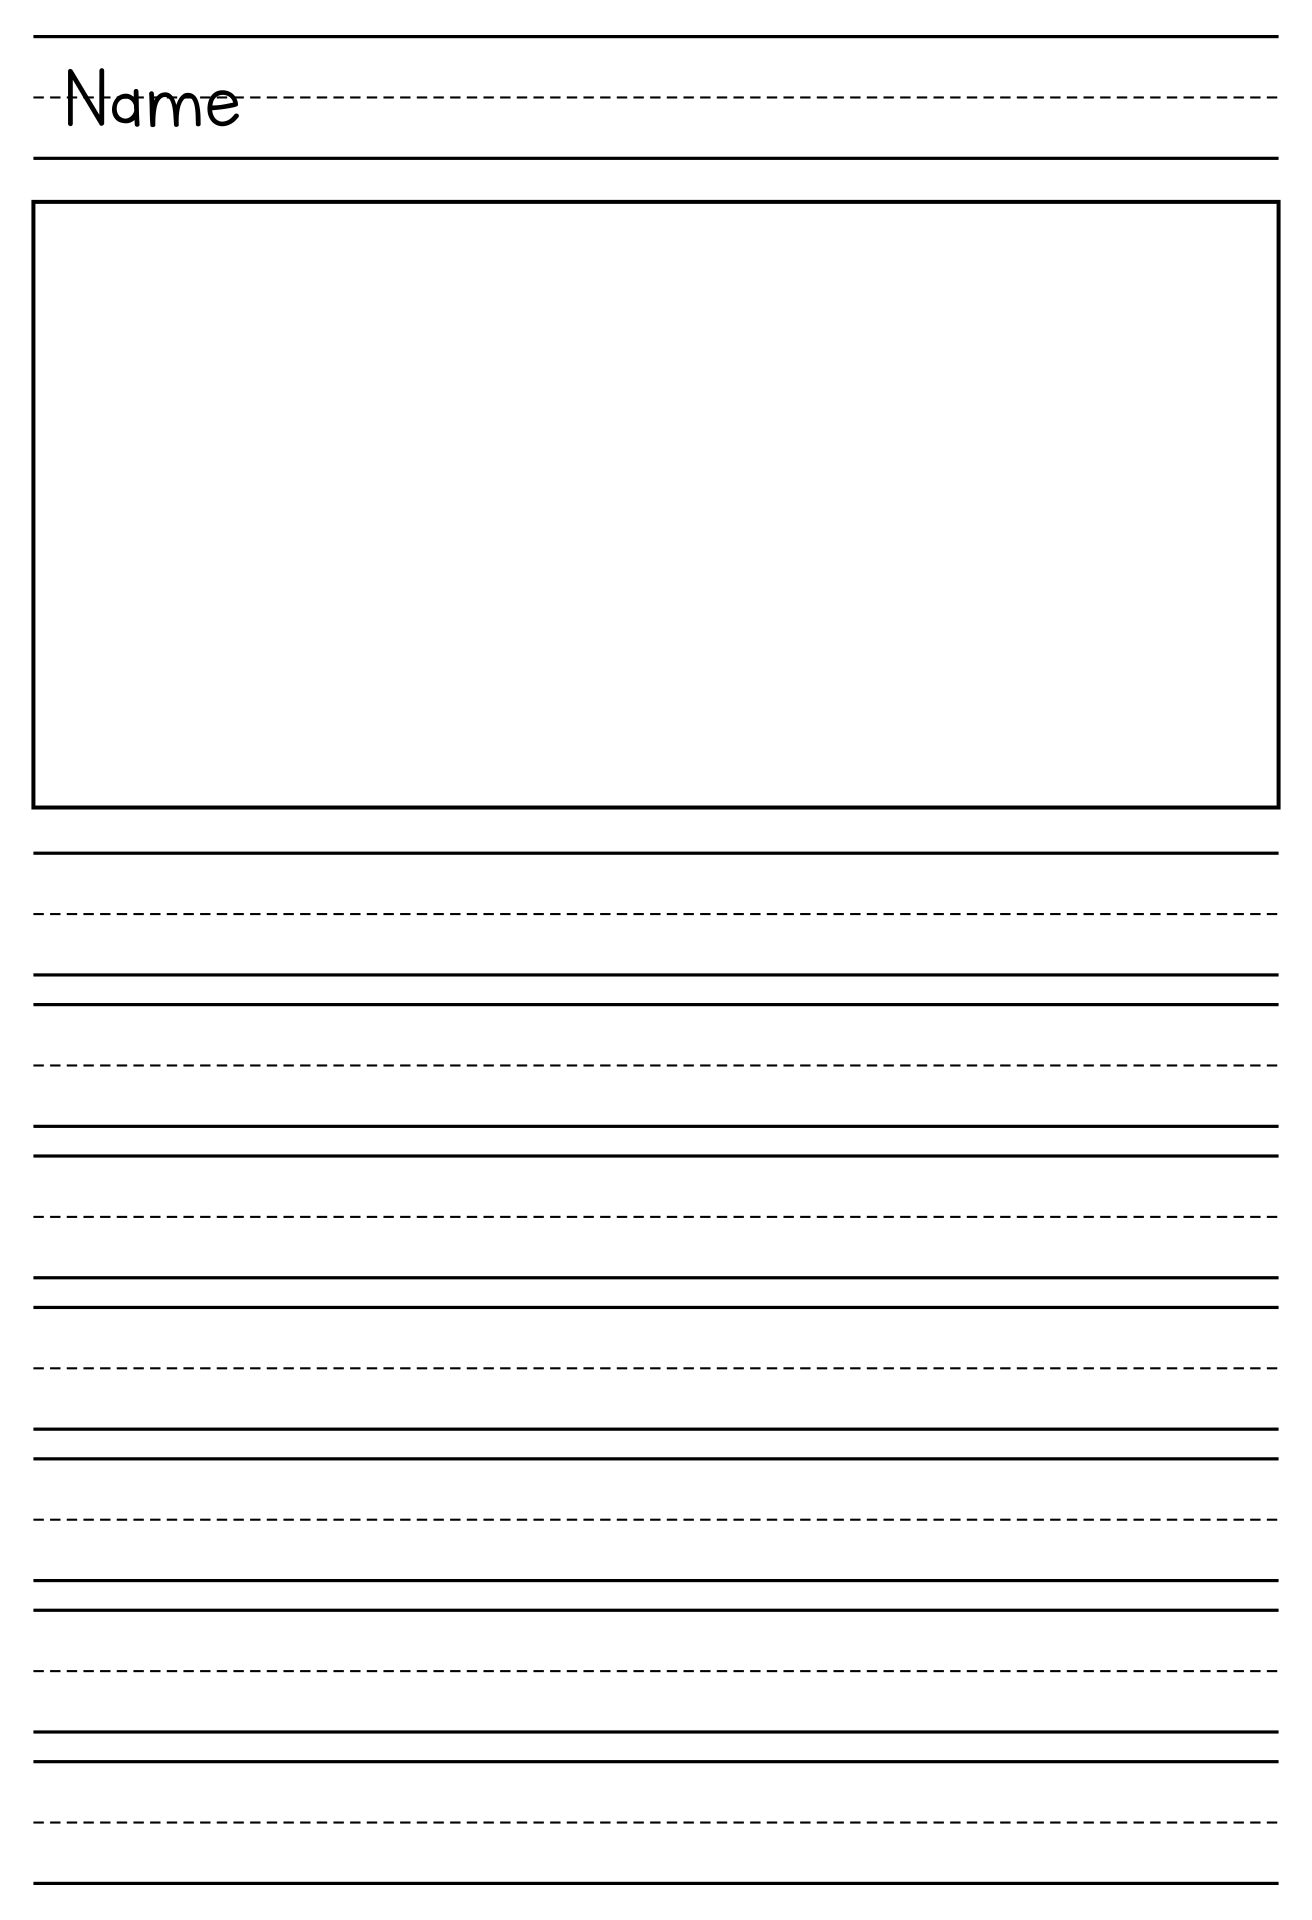 Printable Primary Writing Paper Template